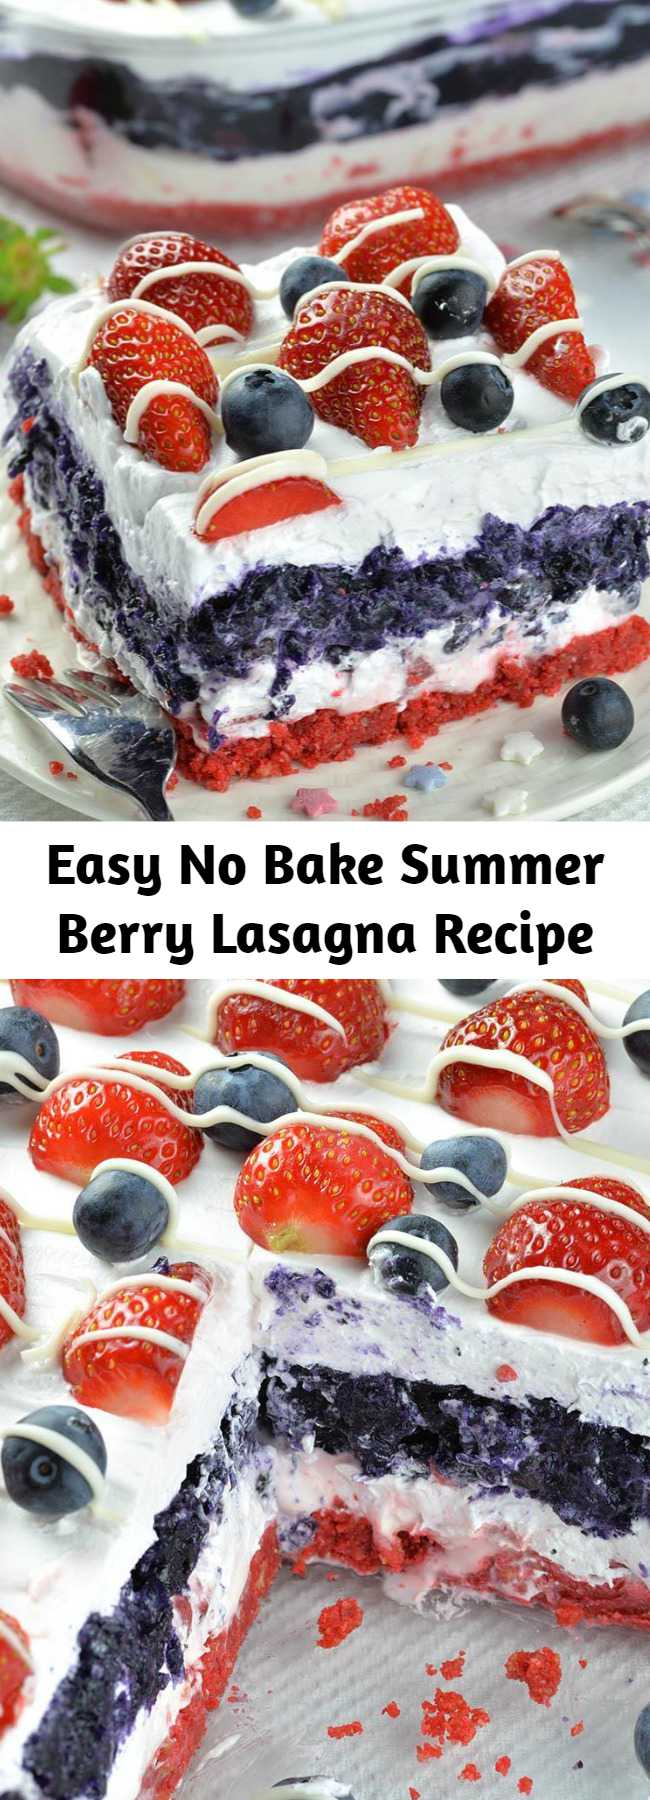 Easy No Bake Summer Berry Lasagna Recipe - No Bake Summer Berry Lasagna is EASY SUMMER DESSERT RECIPE for refreshing sweet treat. This is perfect idea for Memorial Day and 4th of July dessert.